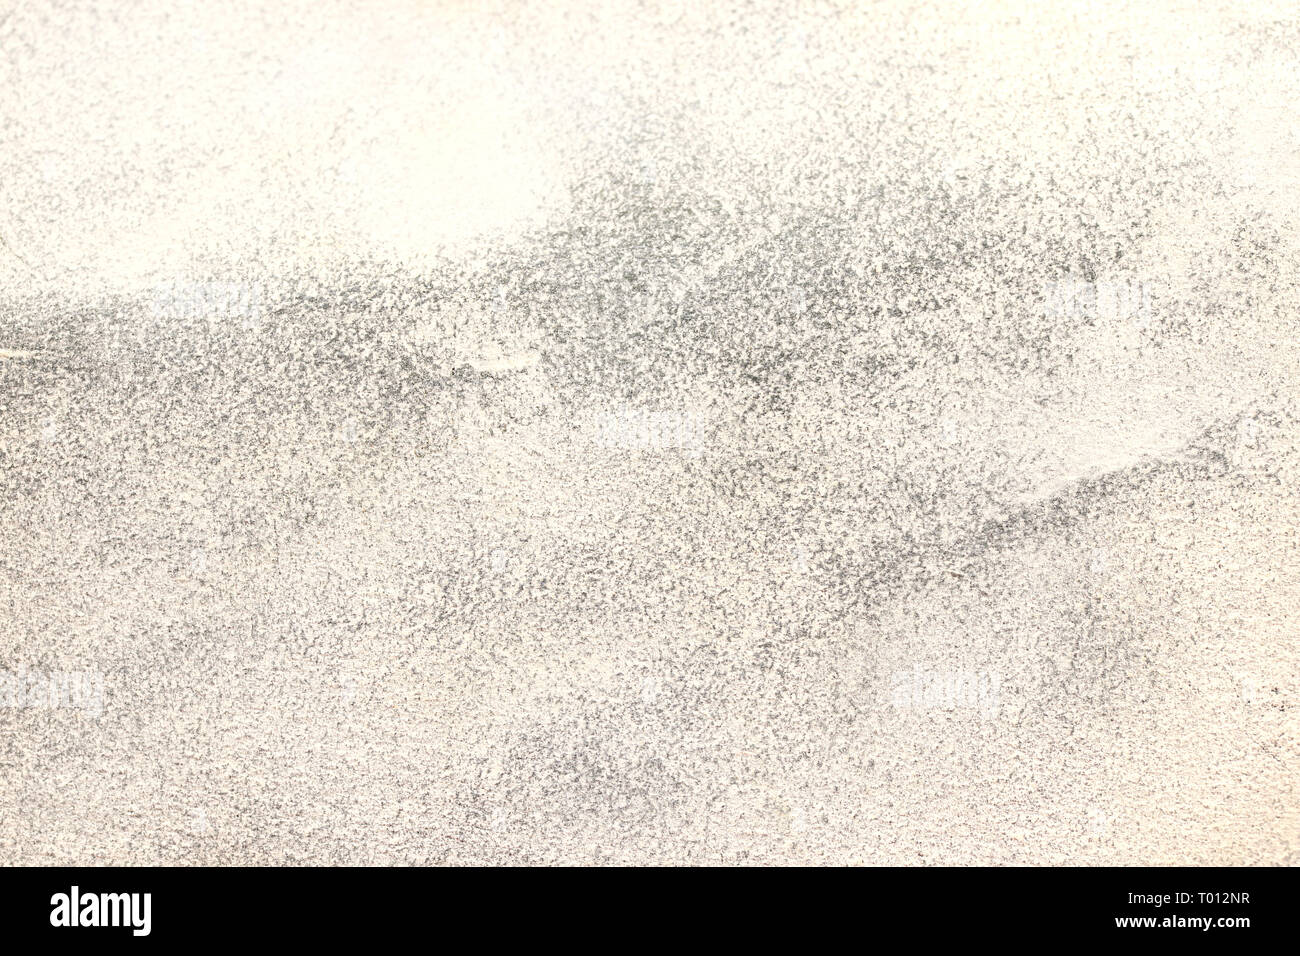 White Sandpaper Attrition Rubbing Texture. Rough Grit Abrasive Background. Used Grain Emery Backdrop. - Stock Image